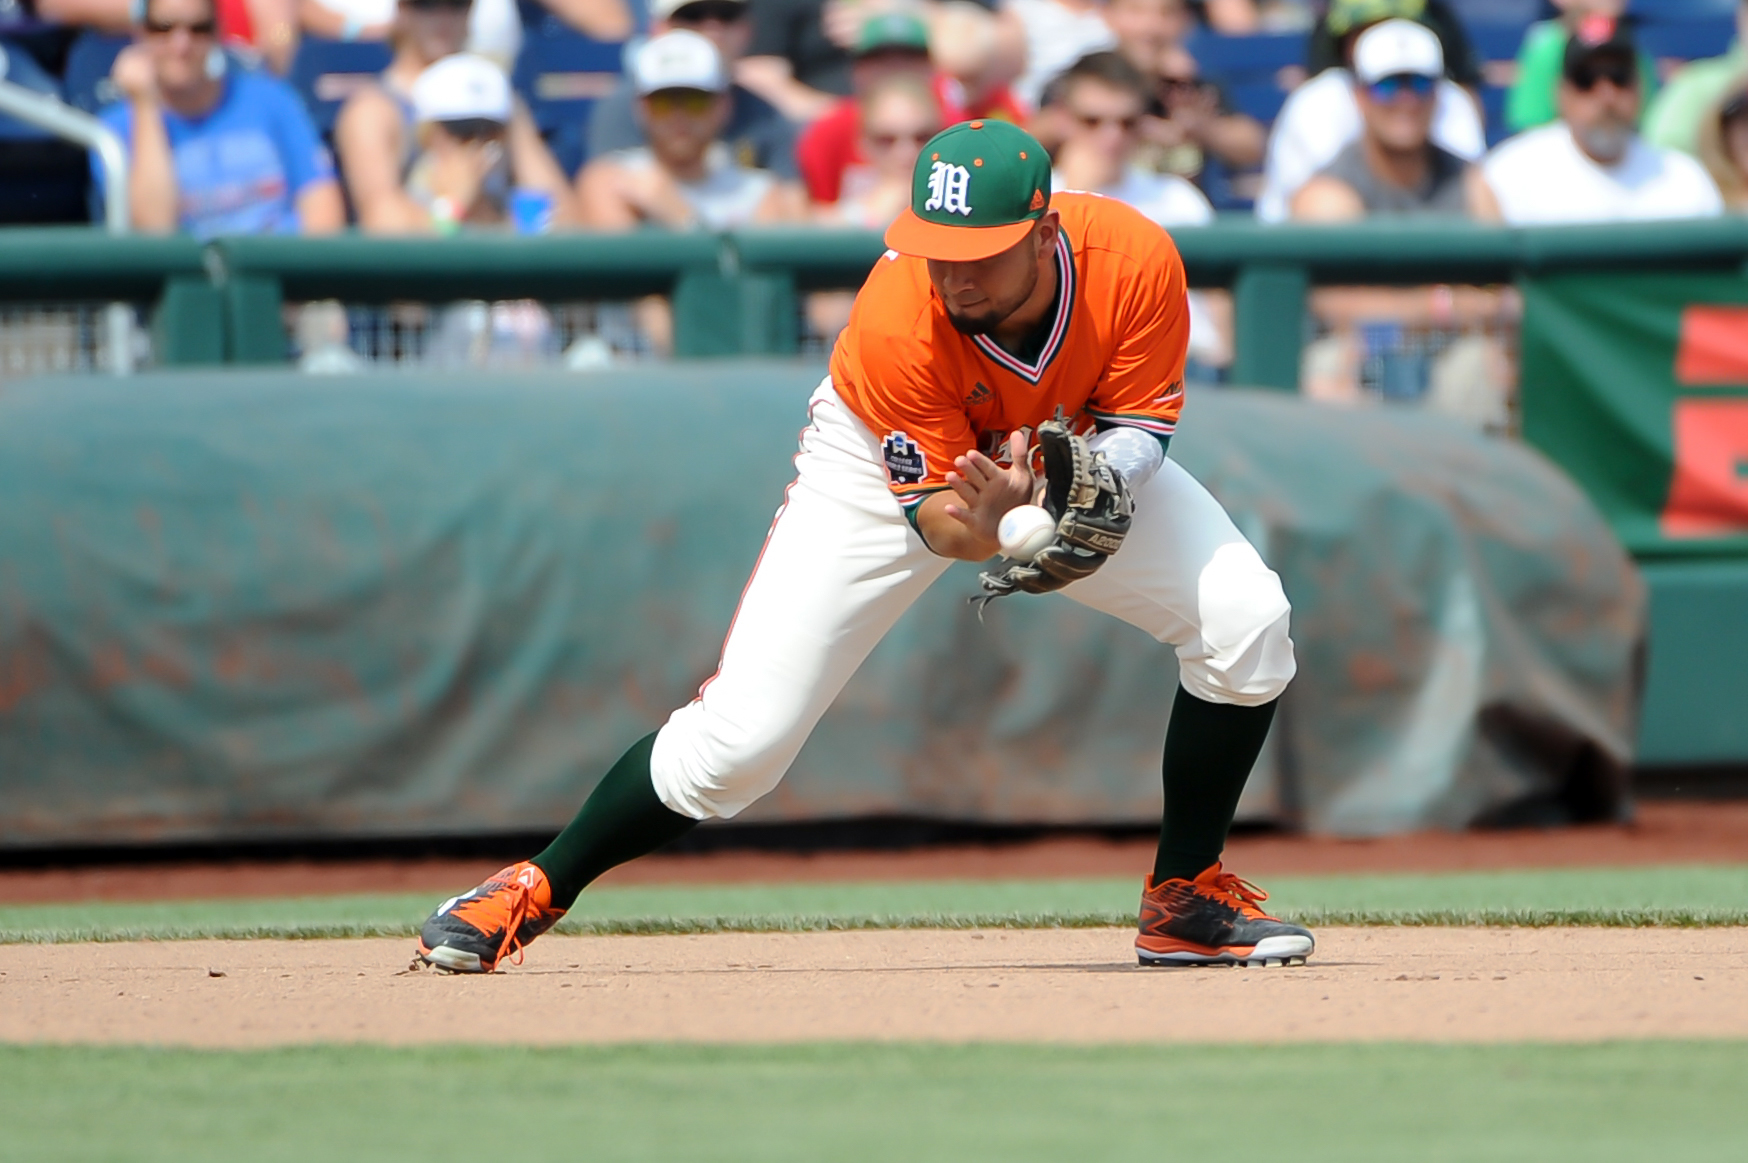 9349975-ncaa-baseball-college-world-series-miami-vs-uc-santa-barbara